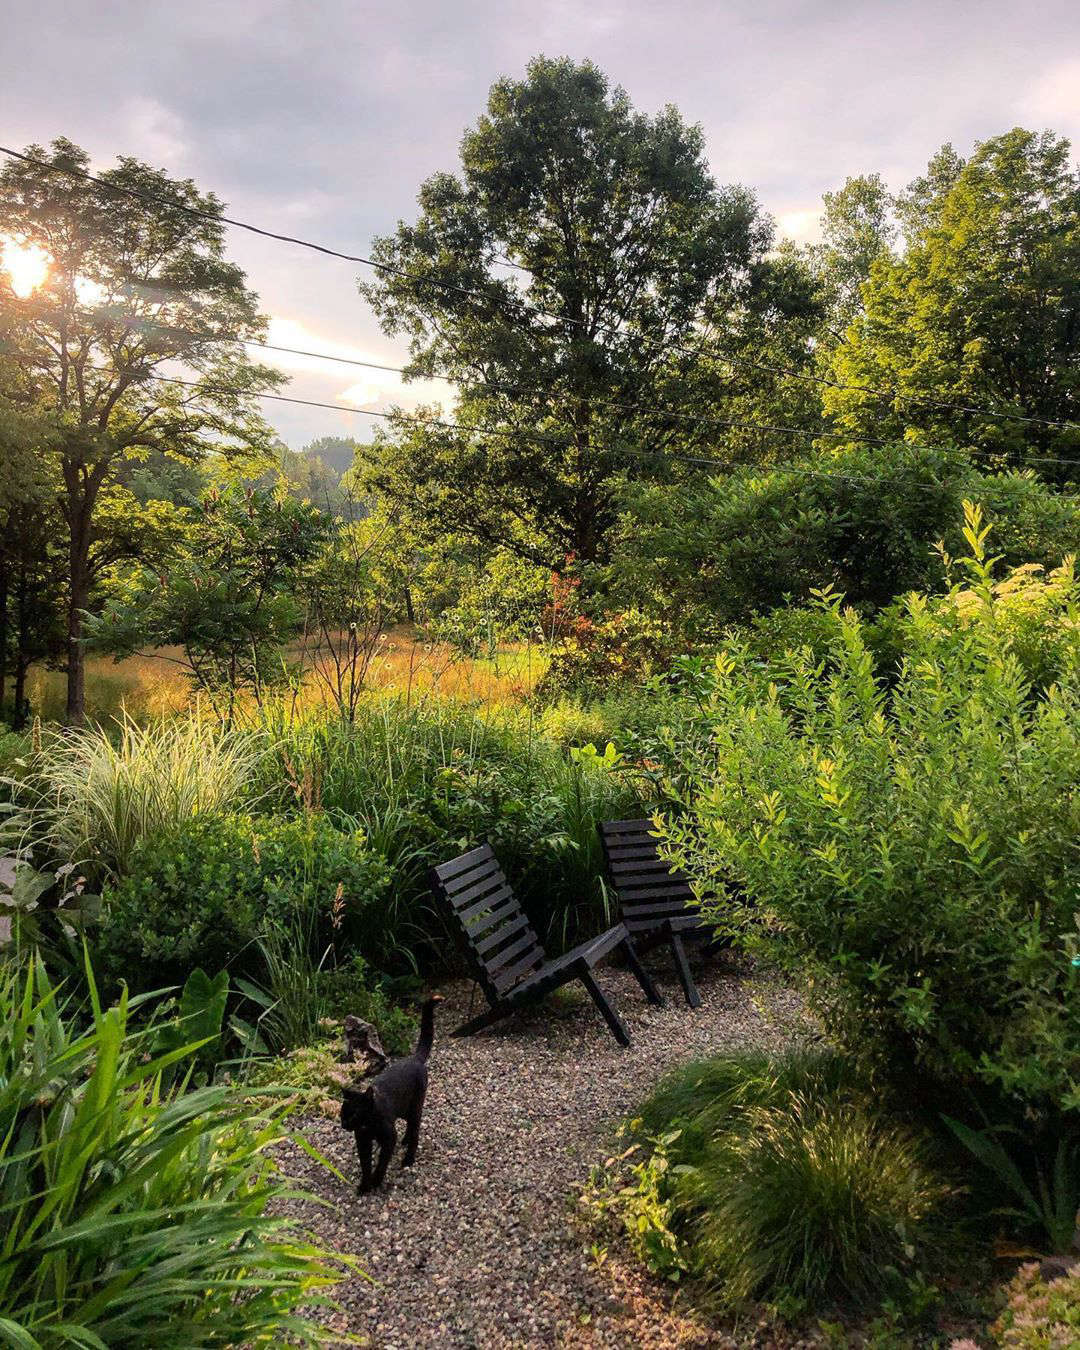 The couple are fans of the stone paths as they allow them to walk through the garden without getting muddy. (See Low-Cost Luxe: 9 Pea Gravel Patio Ideas to Steal.) They made the black chairs themselves as prototypes for a possible outdoor furniture collection.